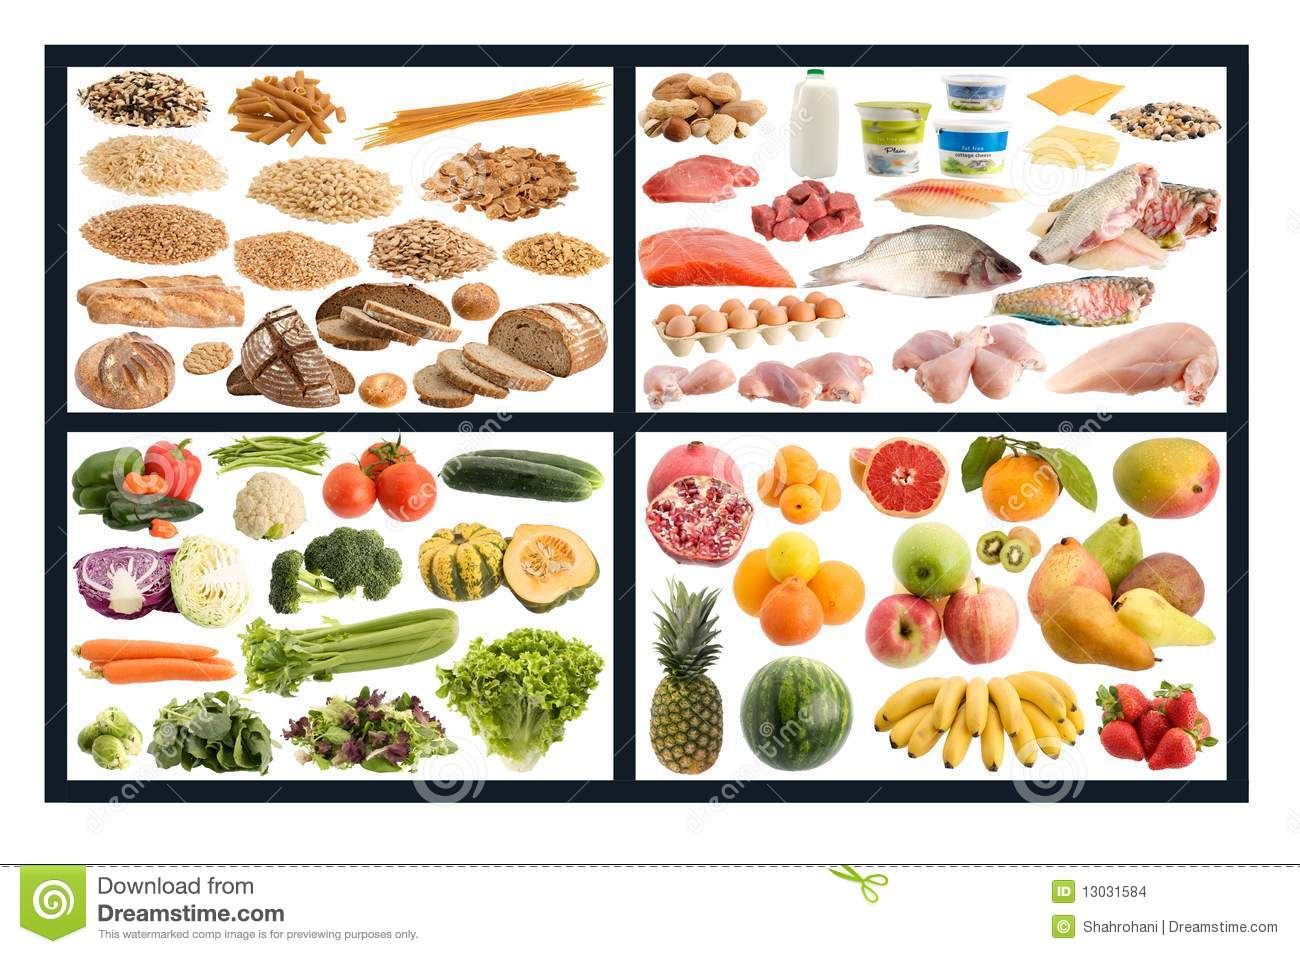 Food Poisoning Wheezing Healthy Food Guide Food Diary